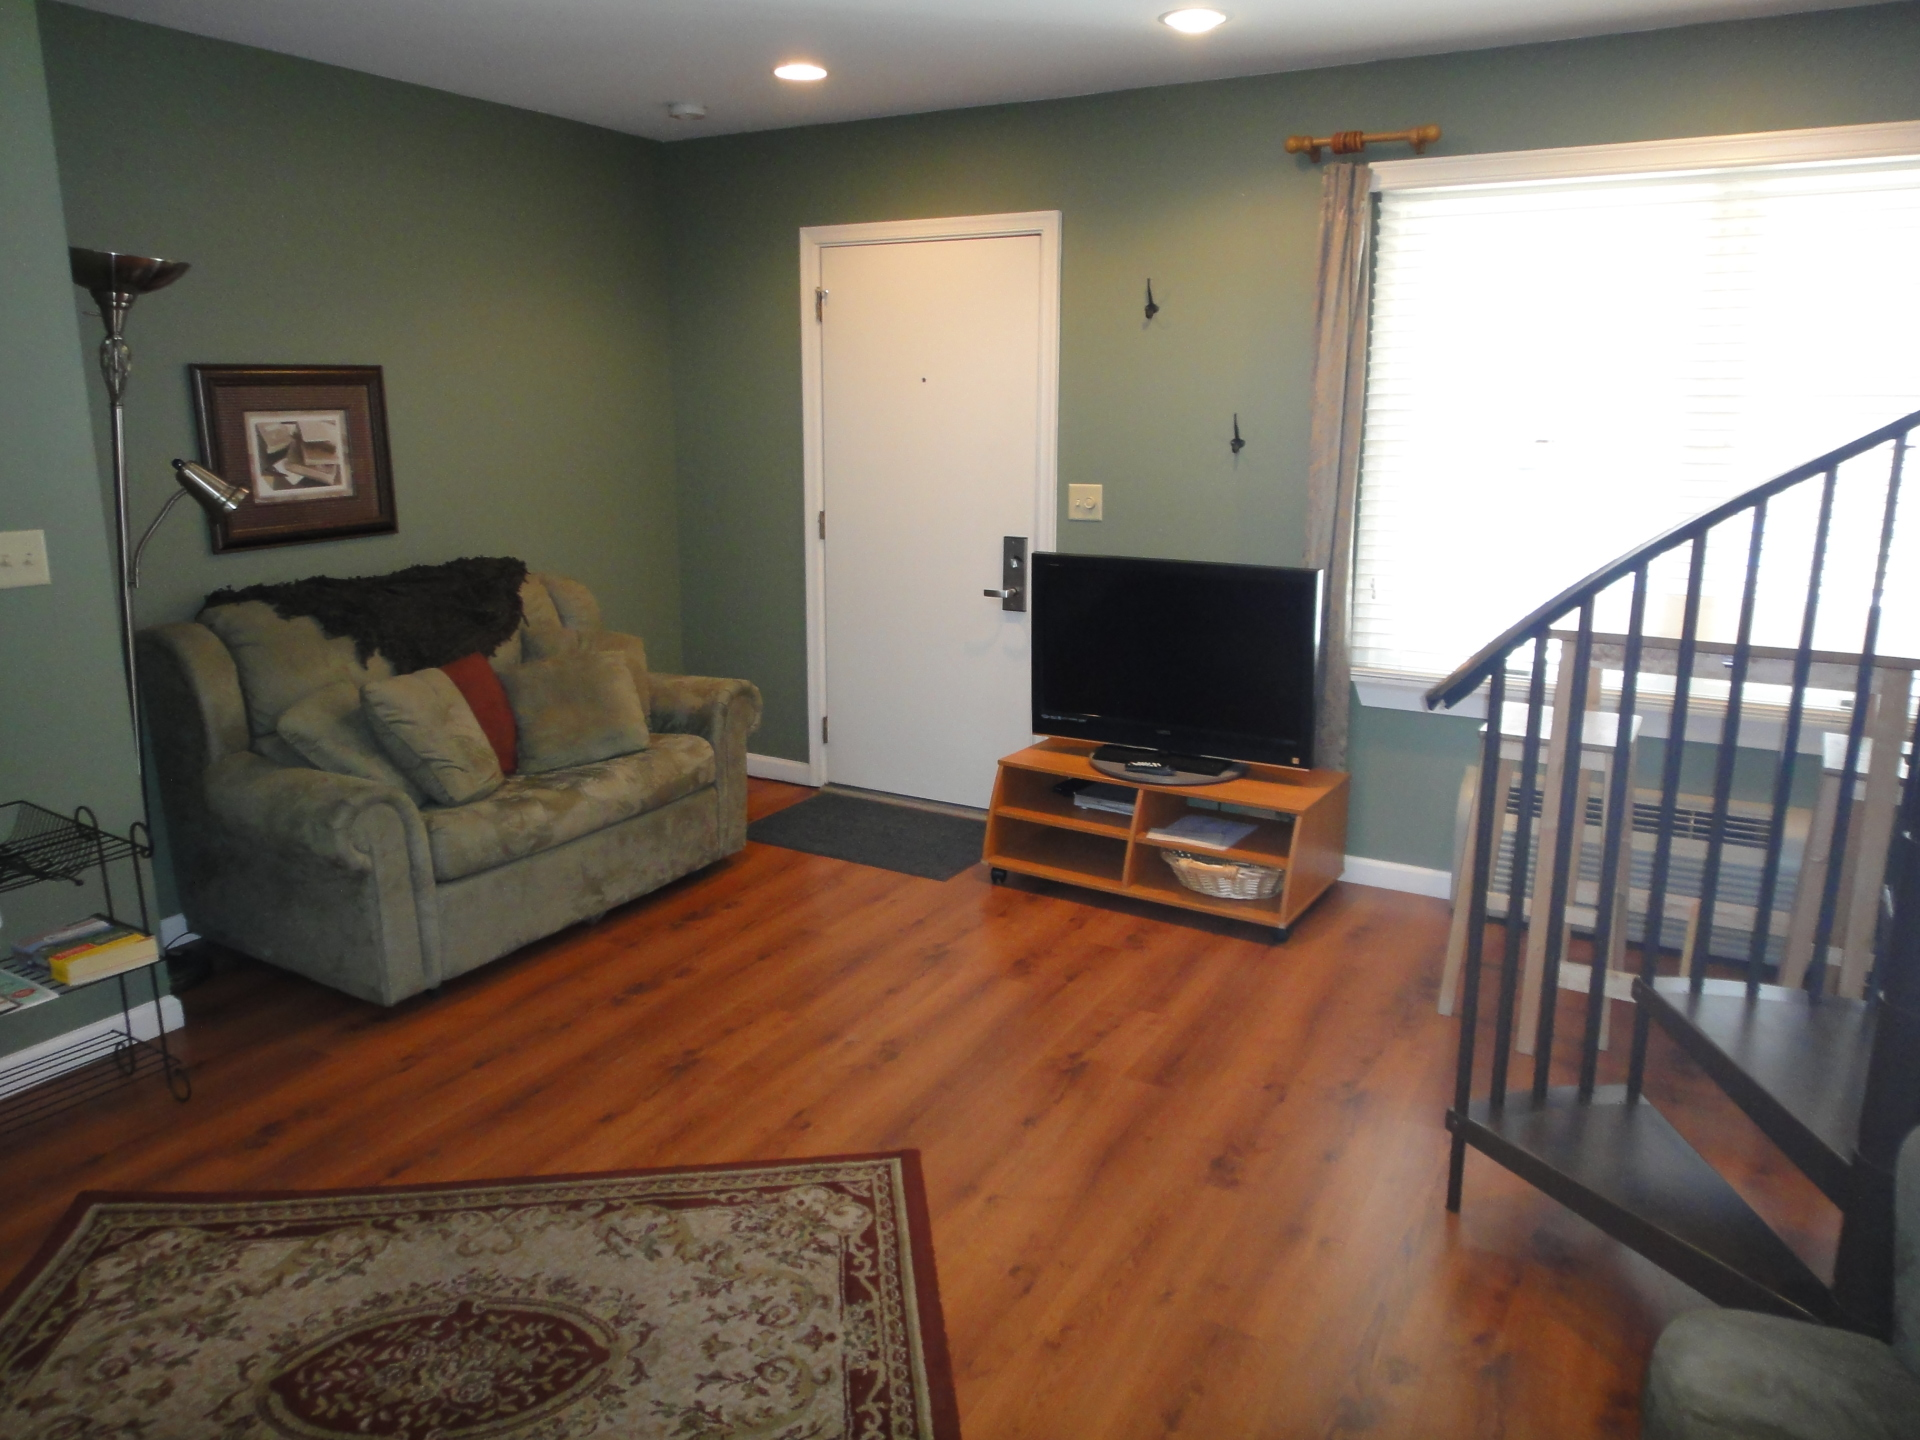 month to month apartment rentals in hershey pa, three month rentals in hershey pa, furnished apartments in hershey pa